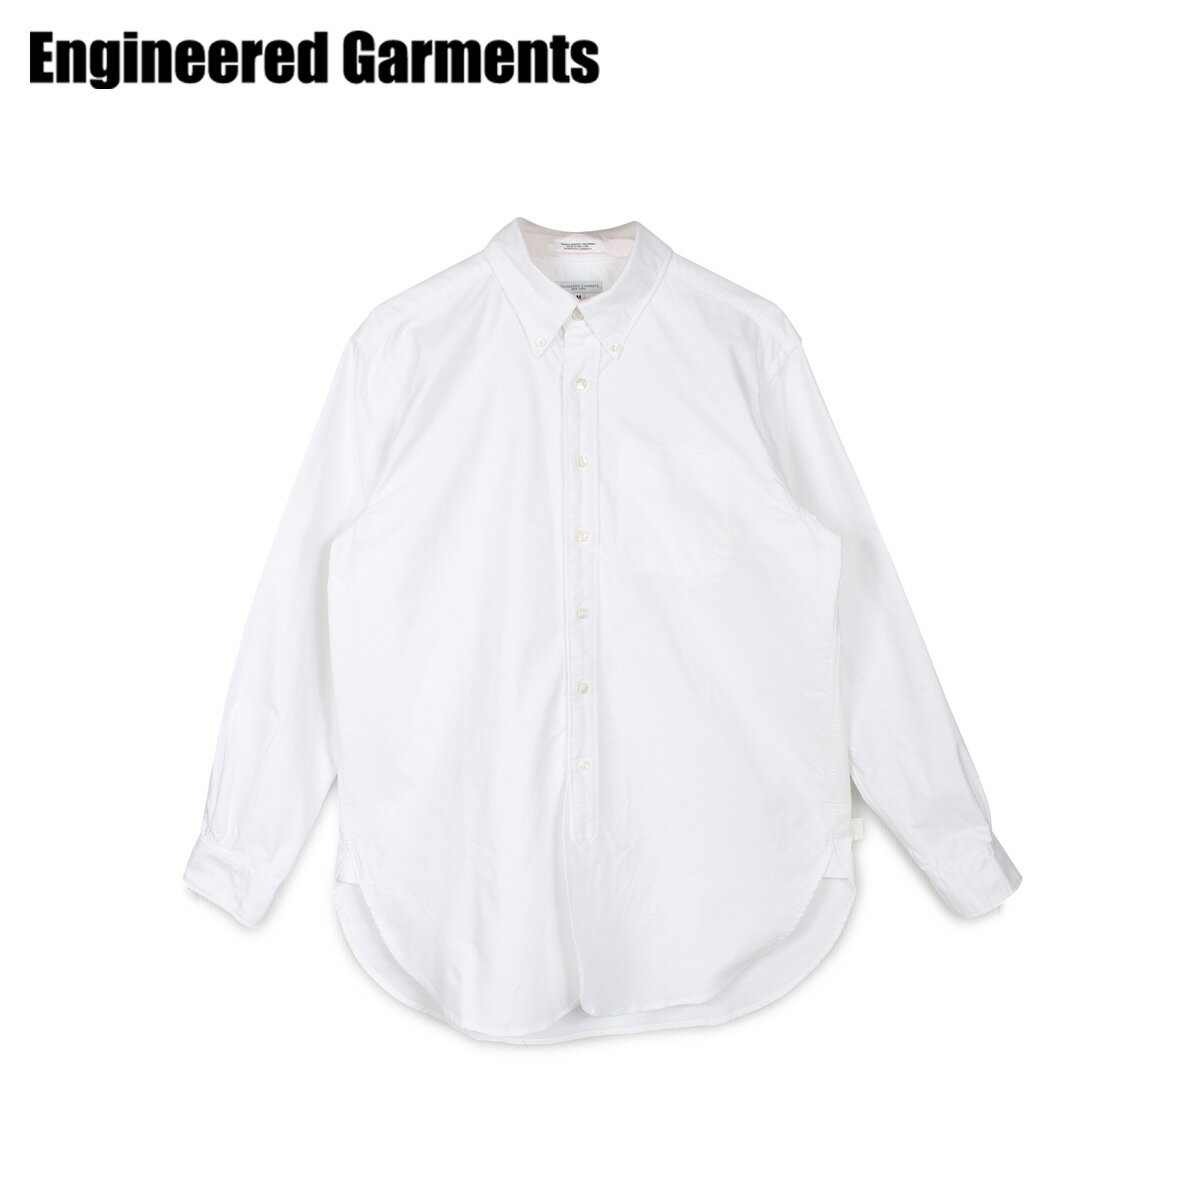 トップス, カジュアルシャツ  ENGINEERED GARMENTS 19 CENTURY BD SHIRT 20S1A001